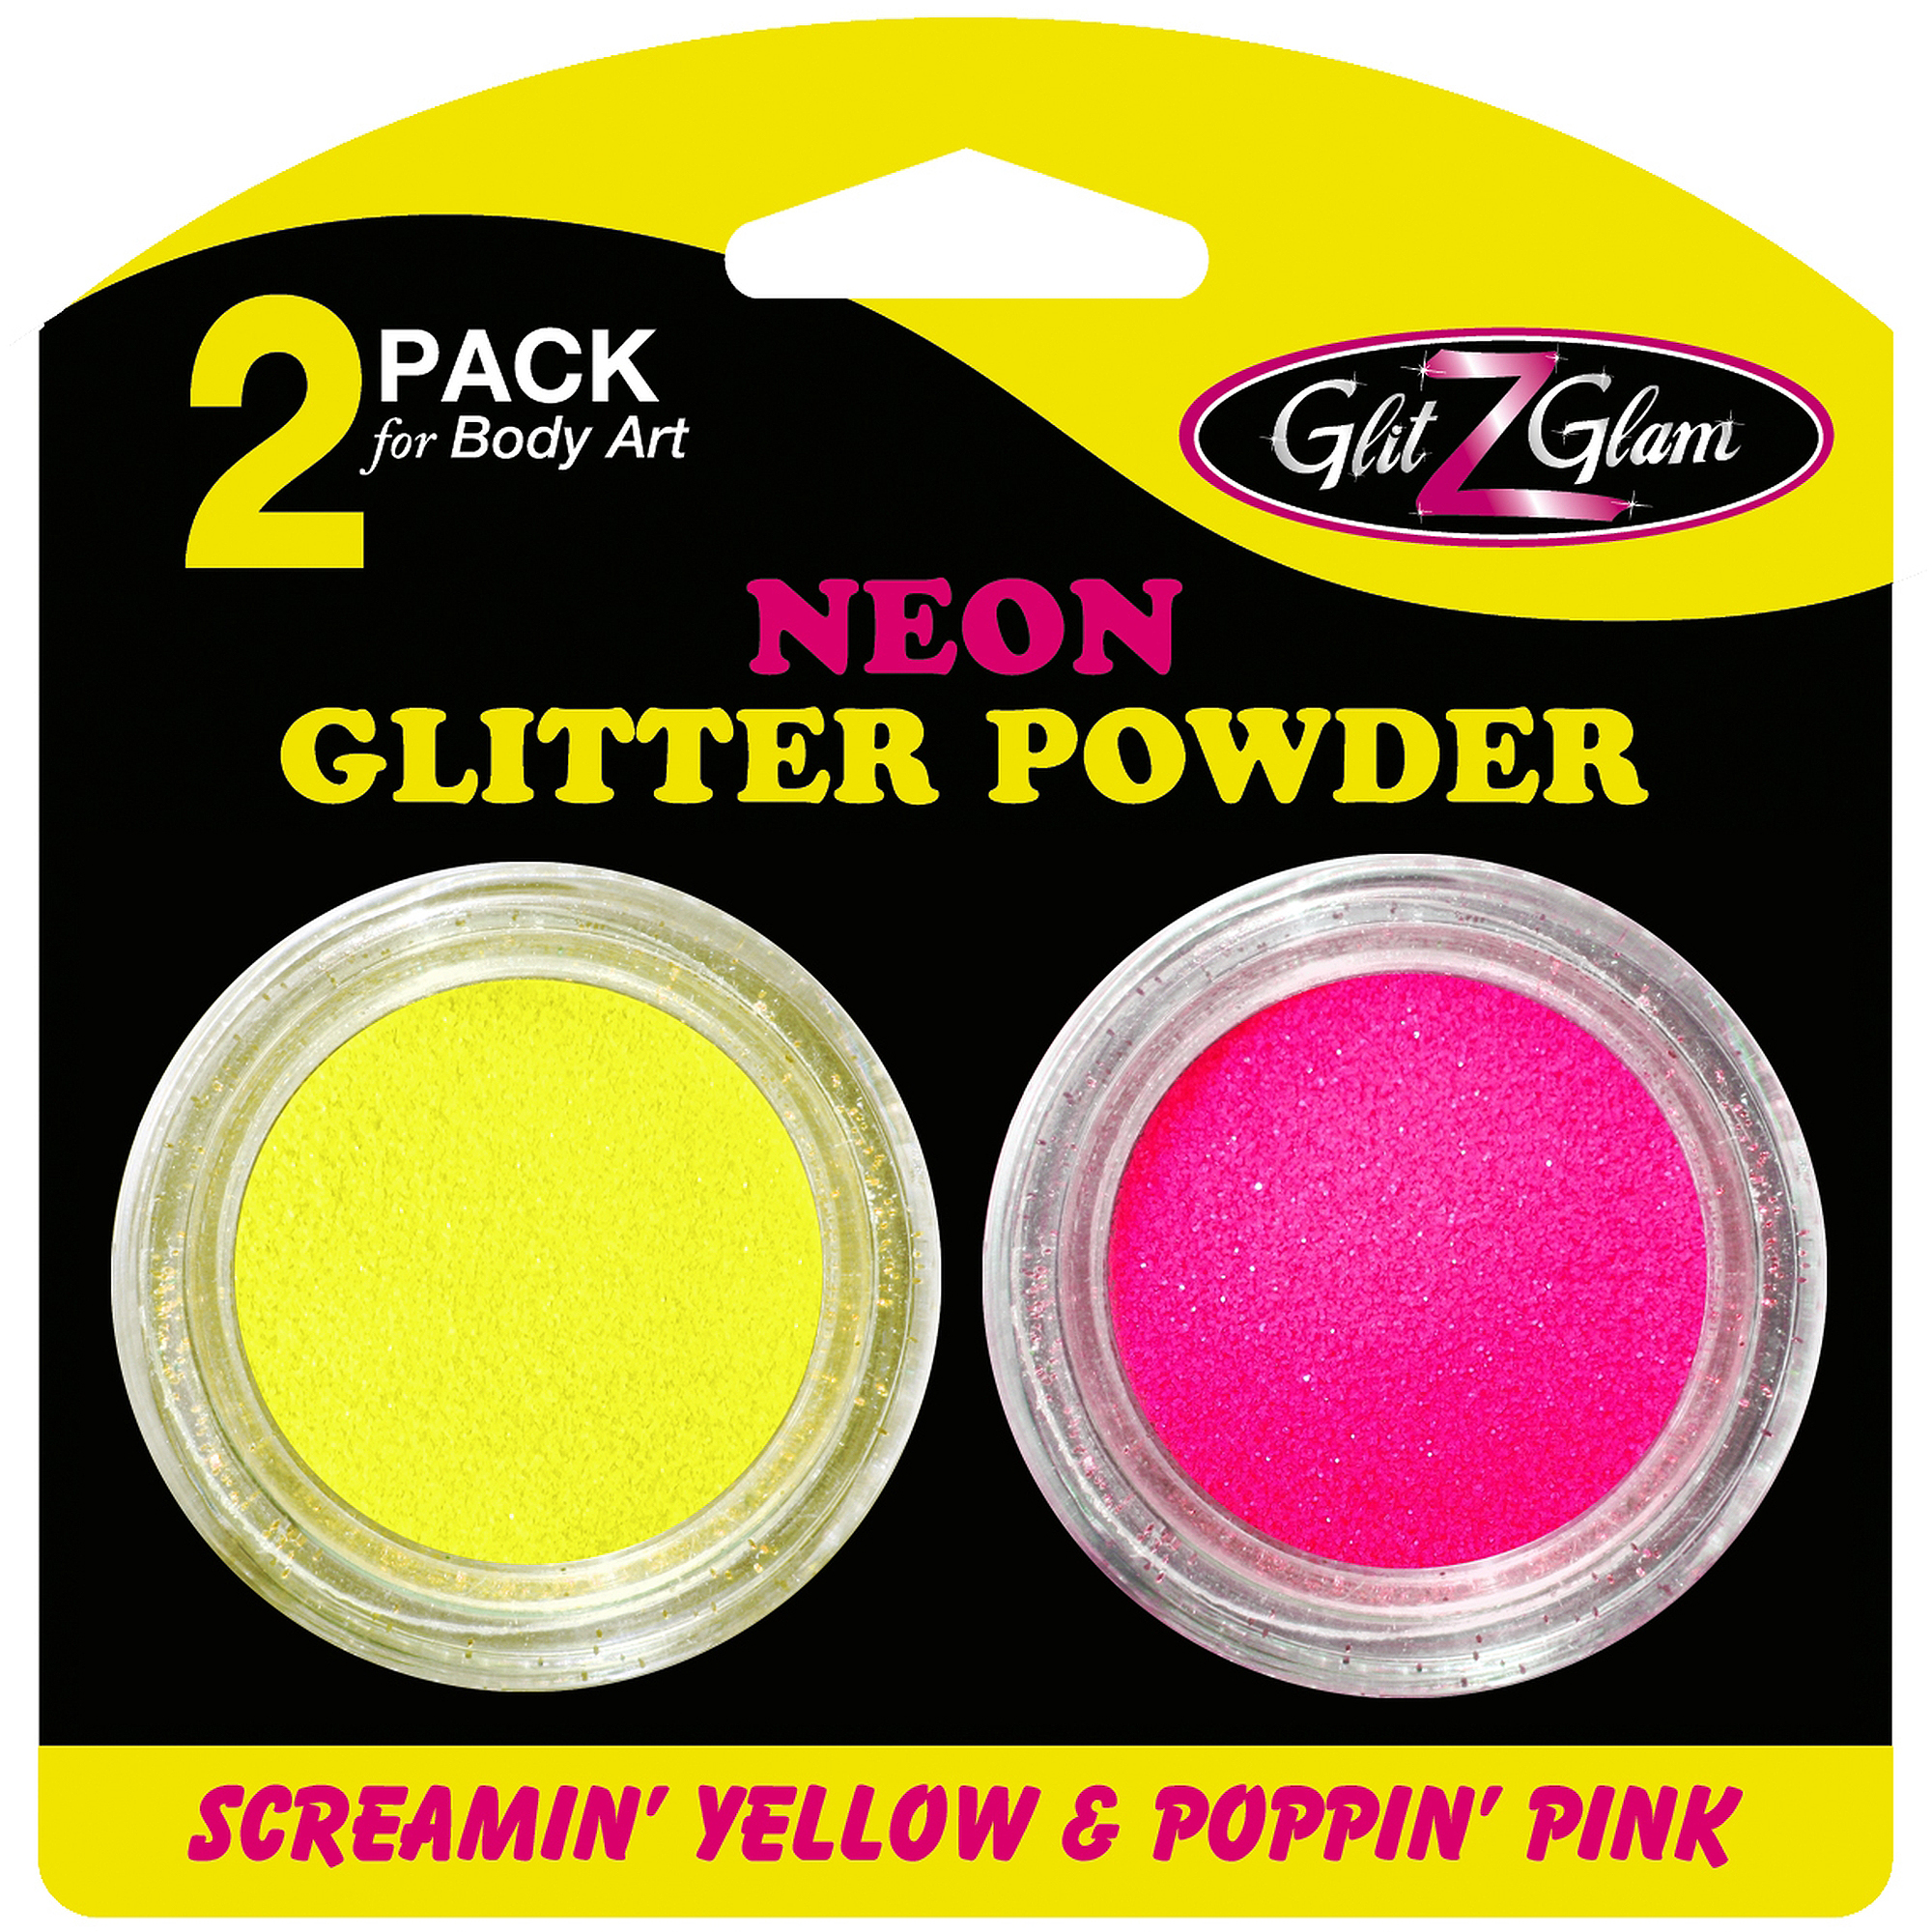 GlitZGlam Glitter Neon Poppin' Pink and Screamin' Yellow for Glitter Tattoos and Body Art, 2pk